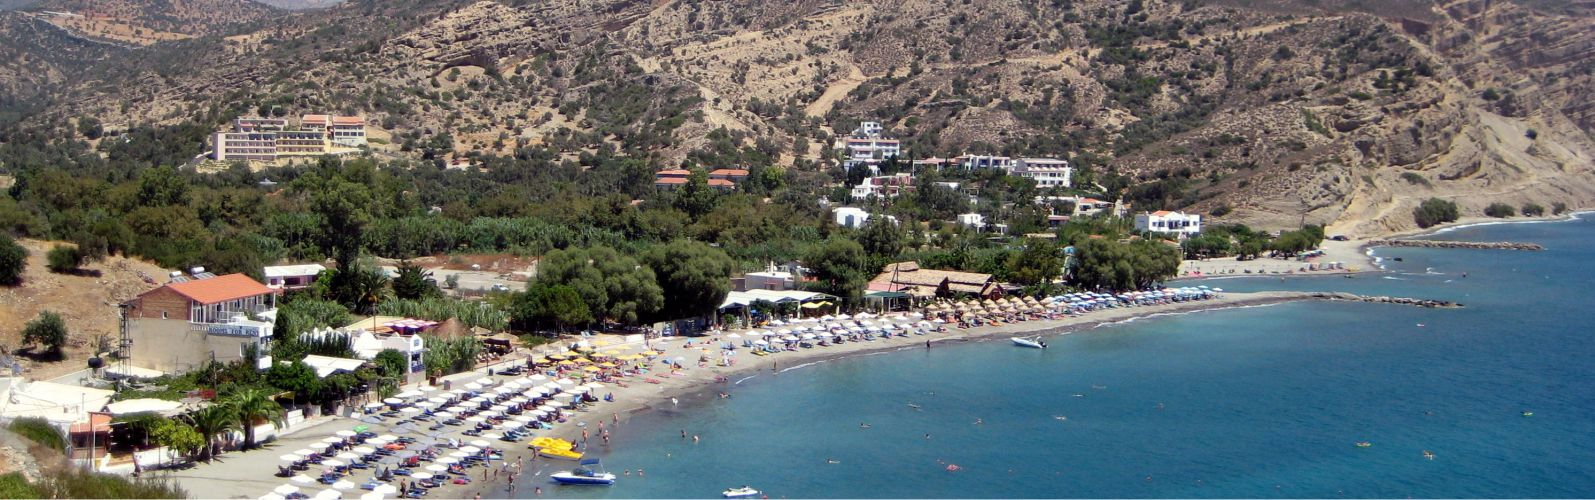 Panorama of the beach at Agia Galini